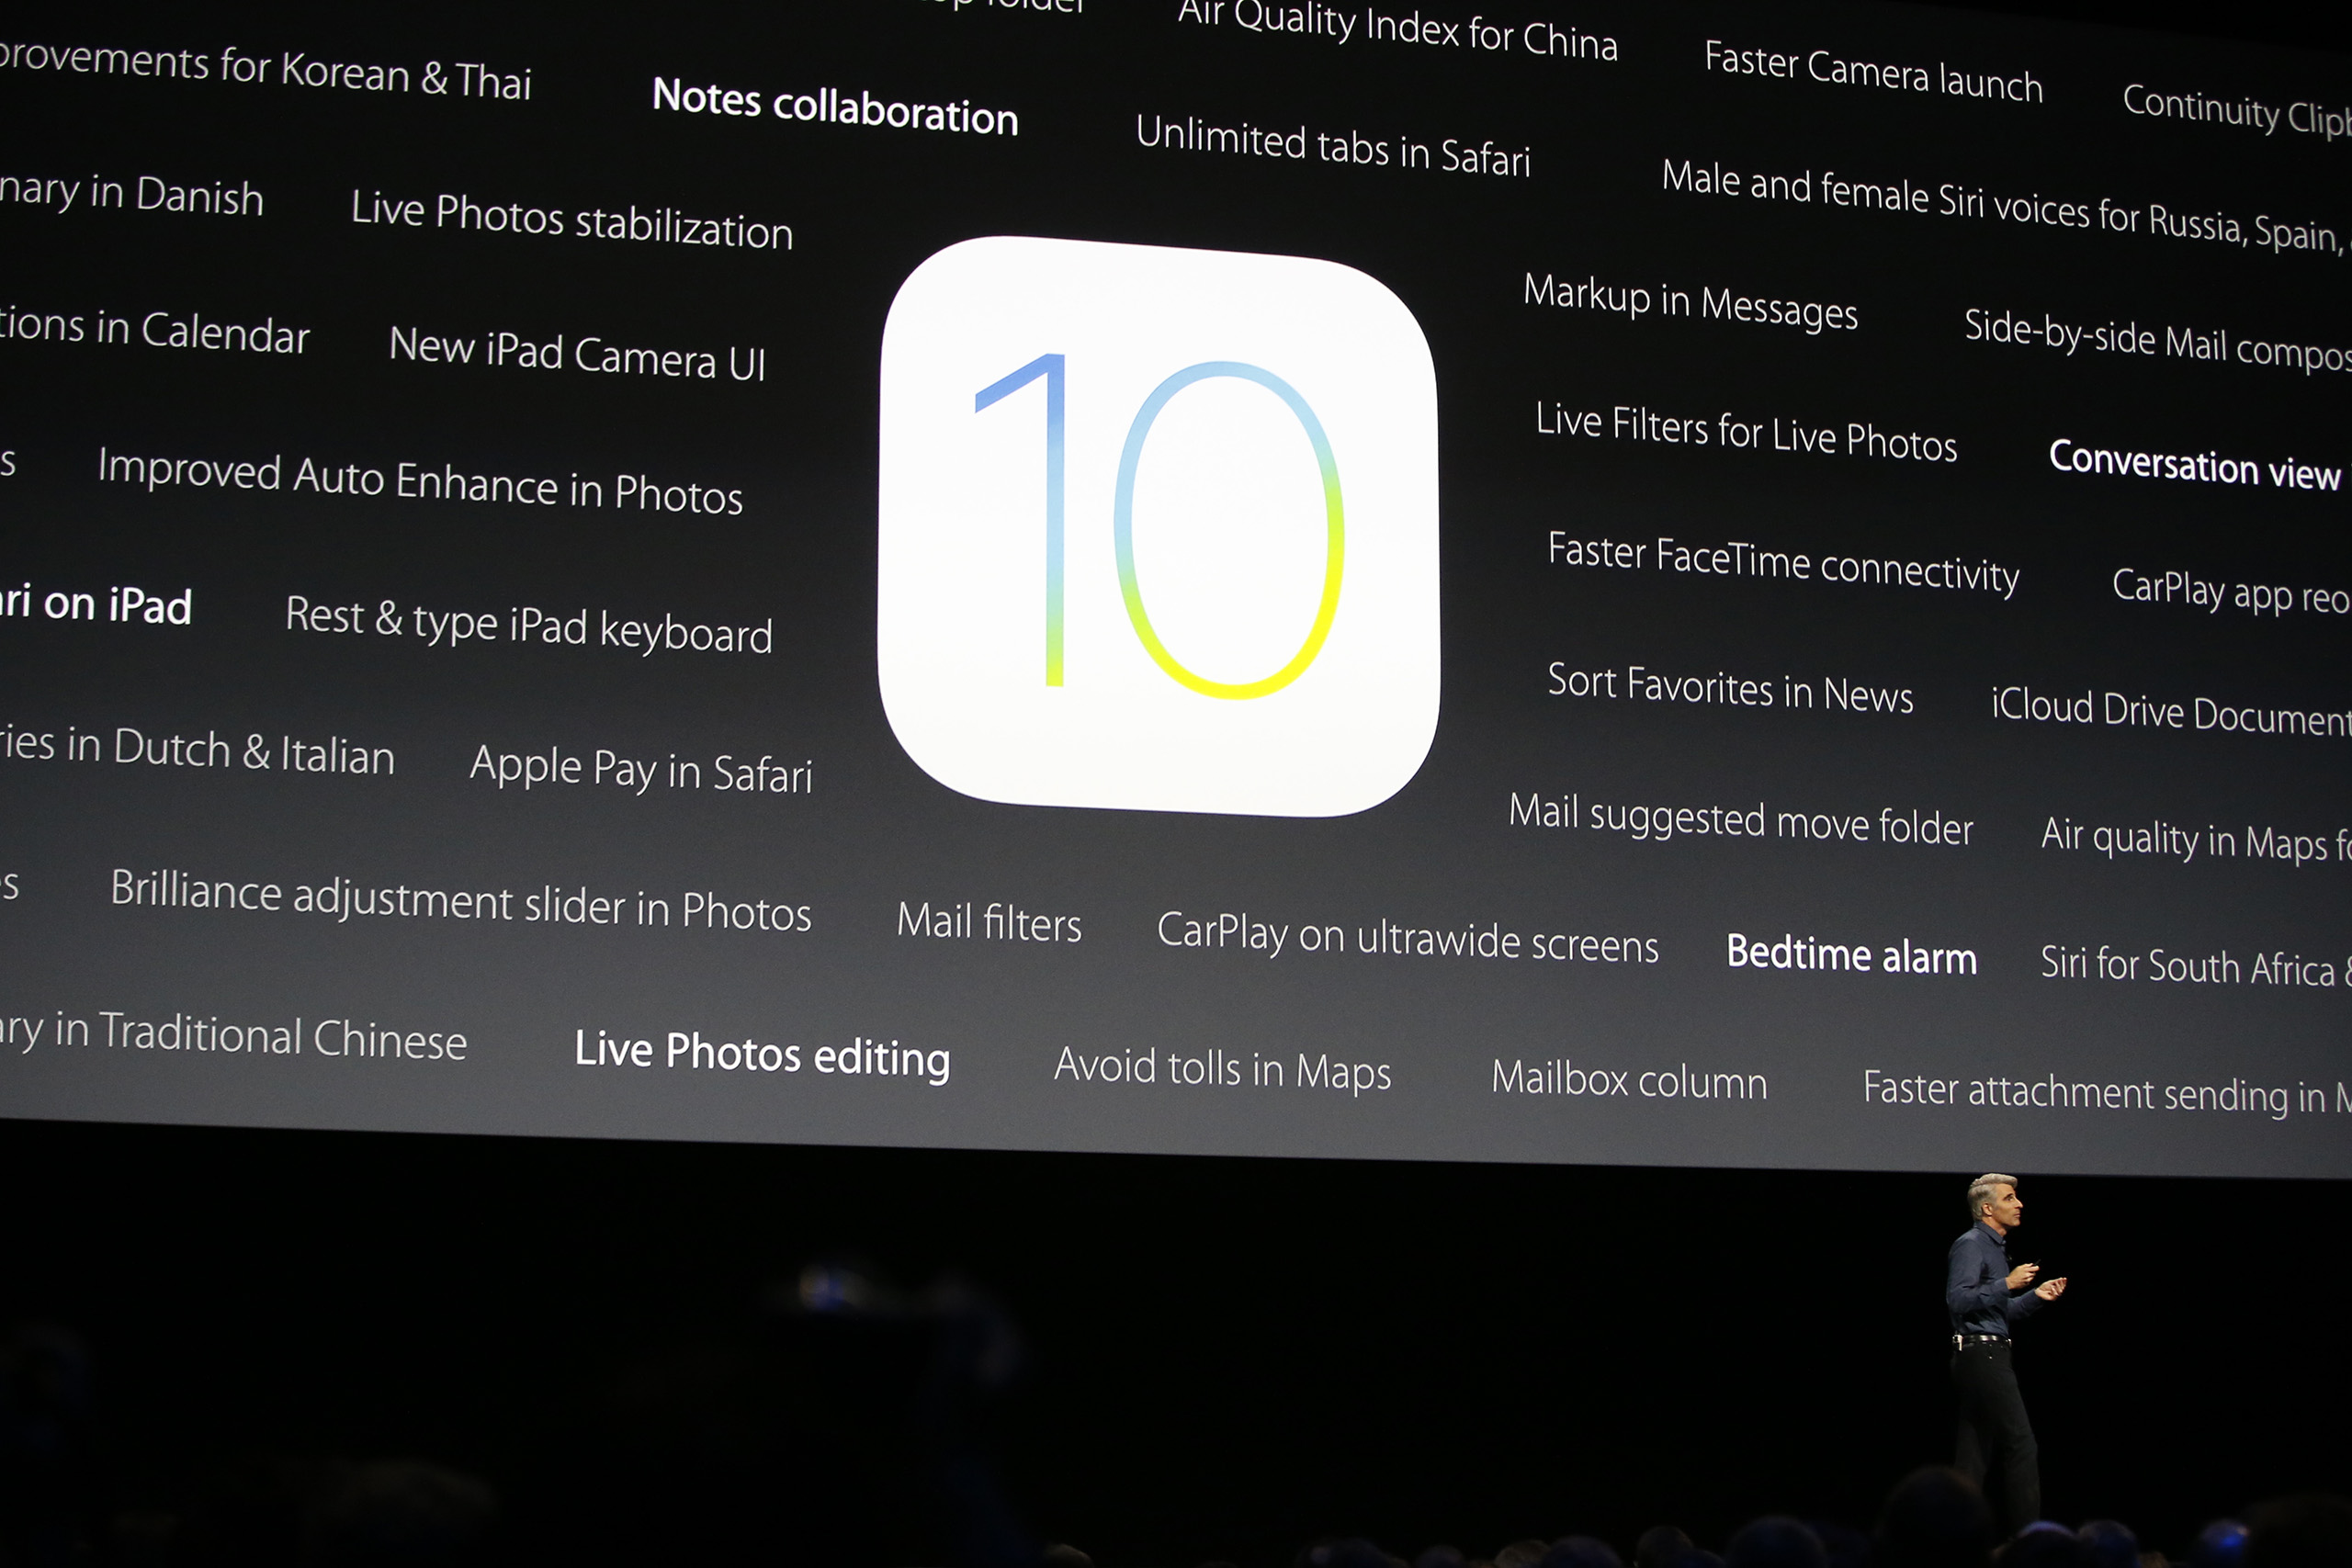 Craig Federighi, Apple senior vice president of software engineering, speaks about the new iOS 10 at the Apple Worldwide Developers Conference in the Bill Graham Civic Auditorium in San Francisco, June 13, 2016.